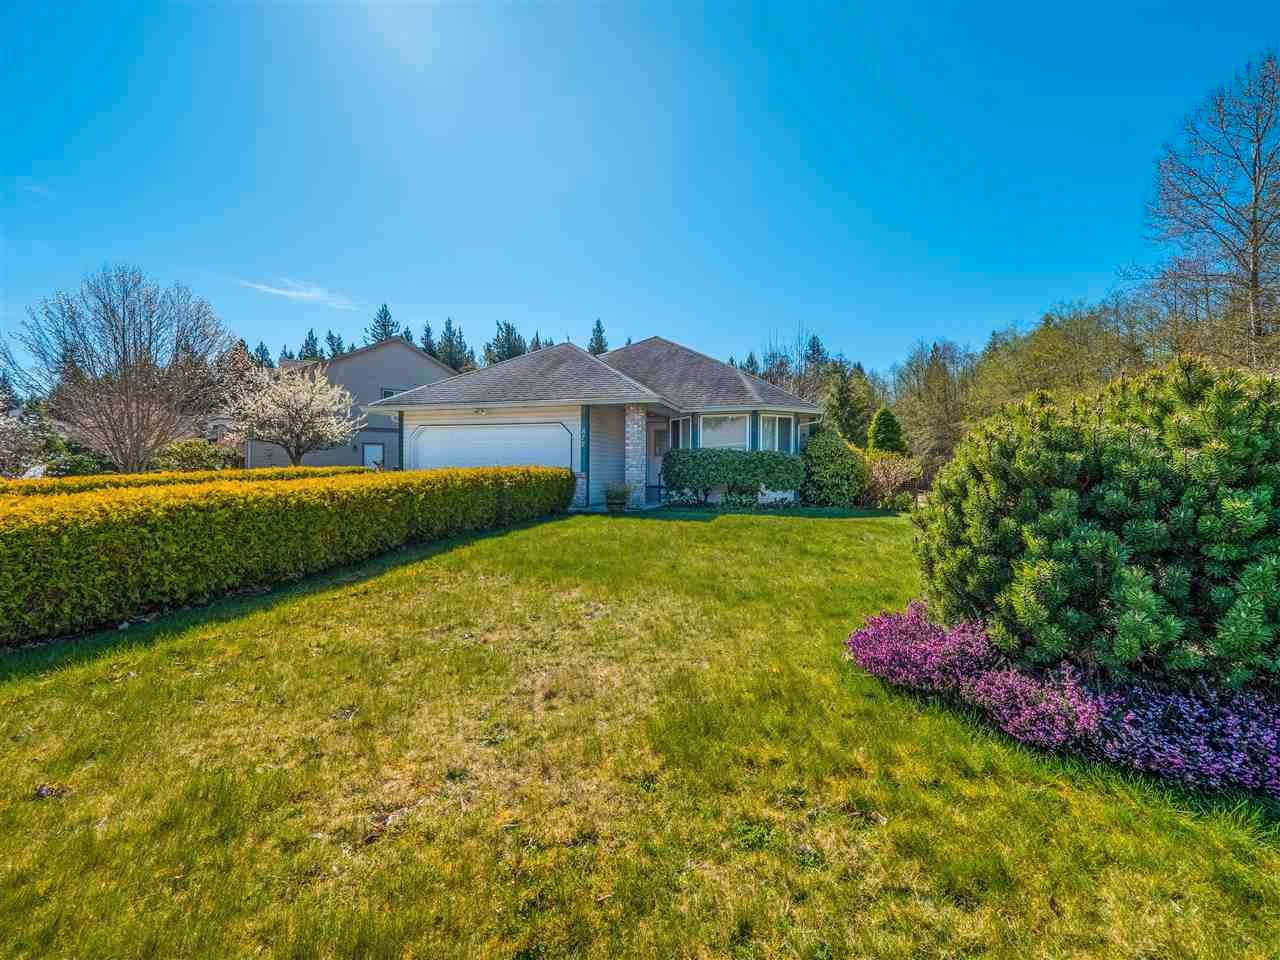 Main Photo: 877 INGLIS Road in Gibsons: Gibsons & Area House for sale (Sunshine Coast)  : MLS®# R2566657